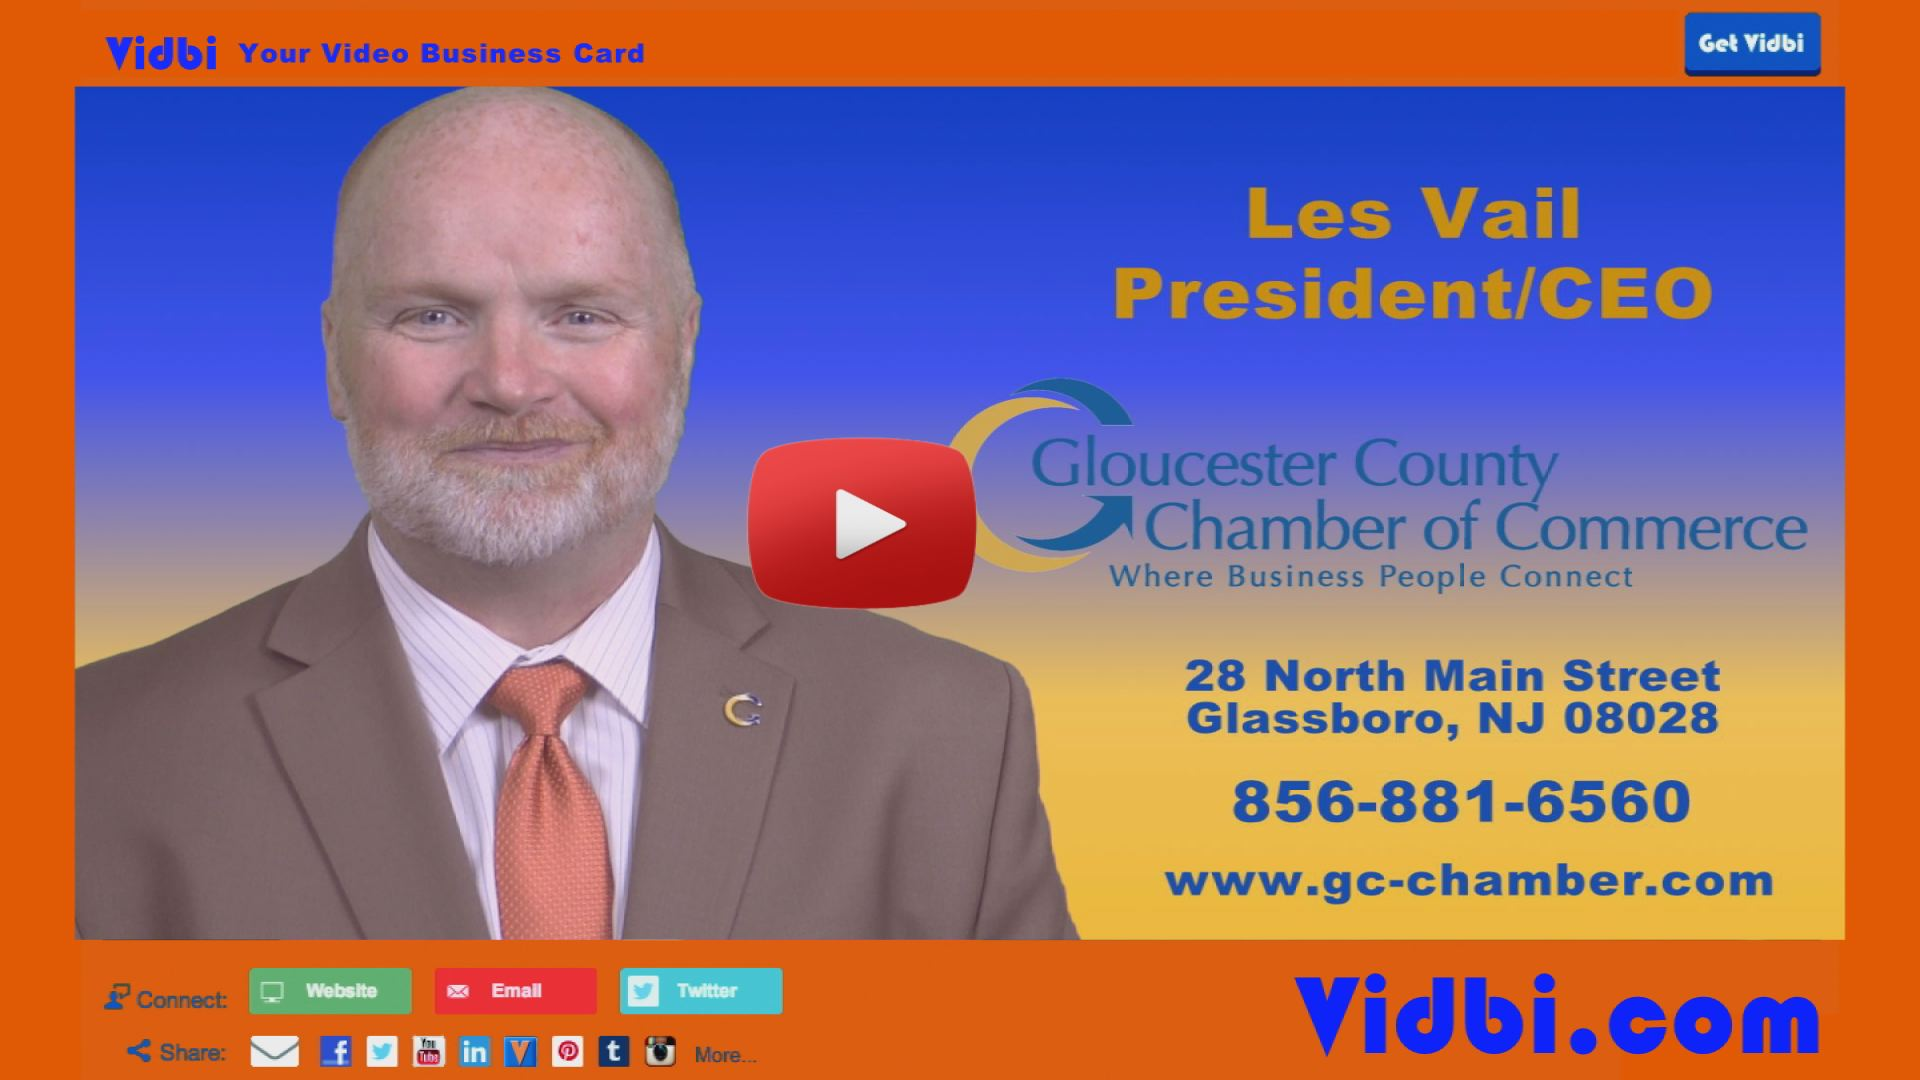 Les Vail - Gloucester County Chamber of Commerce President Vidbi